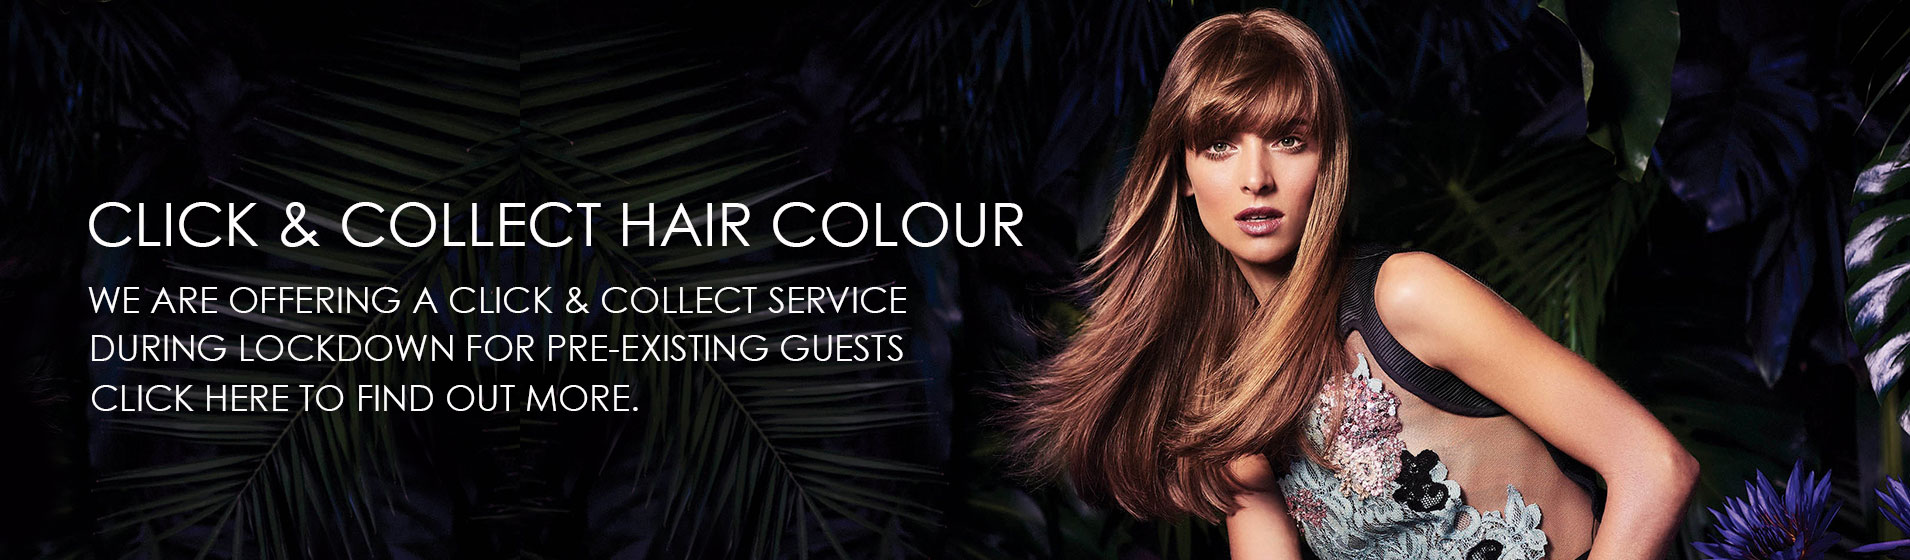 THE BEST HAIR, BEAUTY & LIFESTYLE SALON – ELEMENTS IN OXTED, SURREY